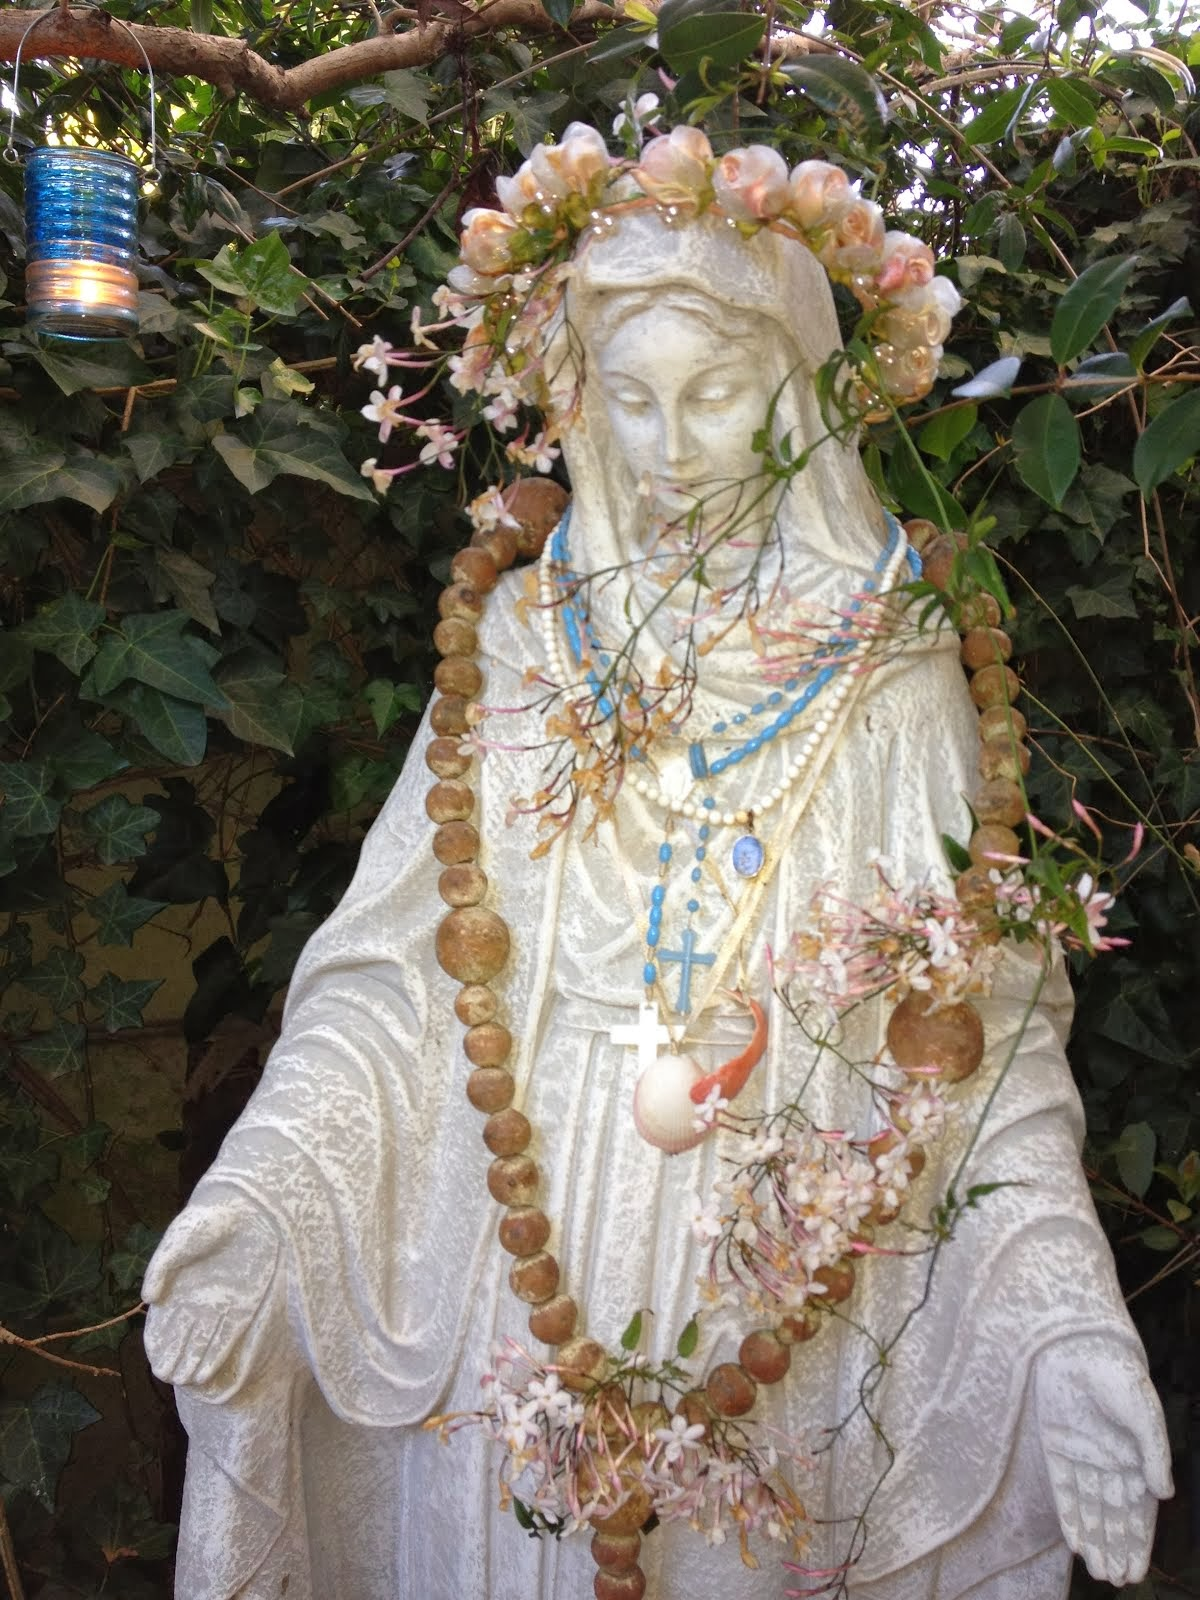 Mary shrine in my garden